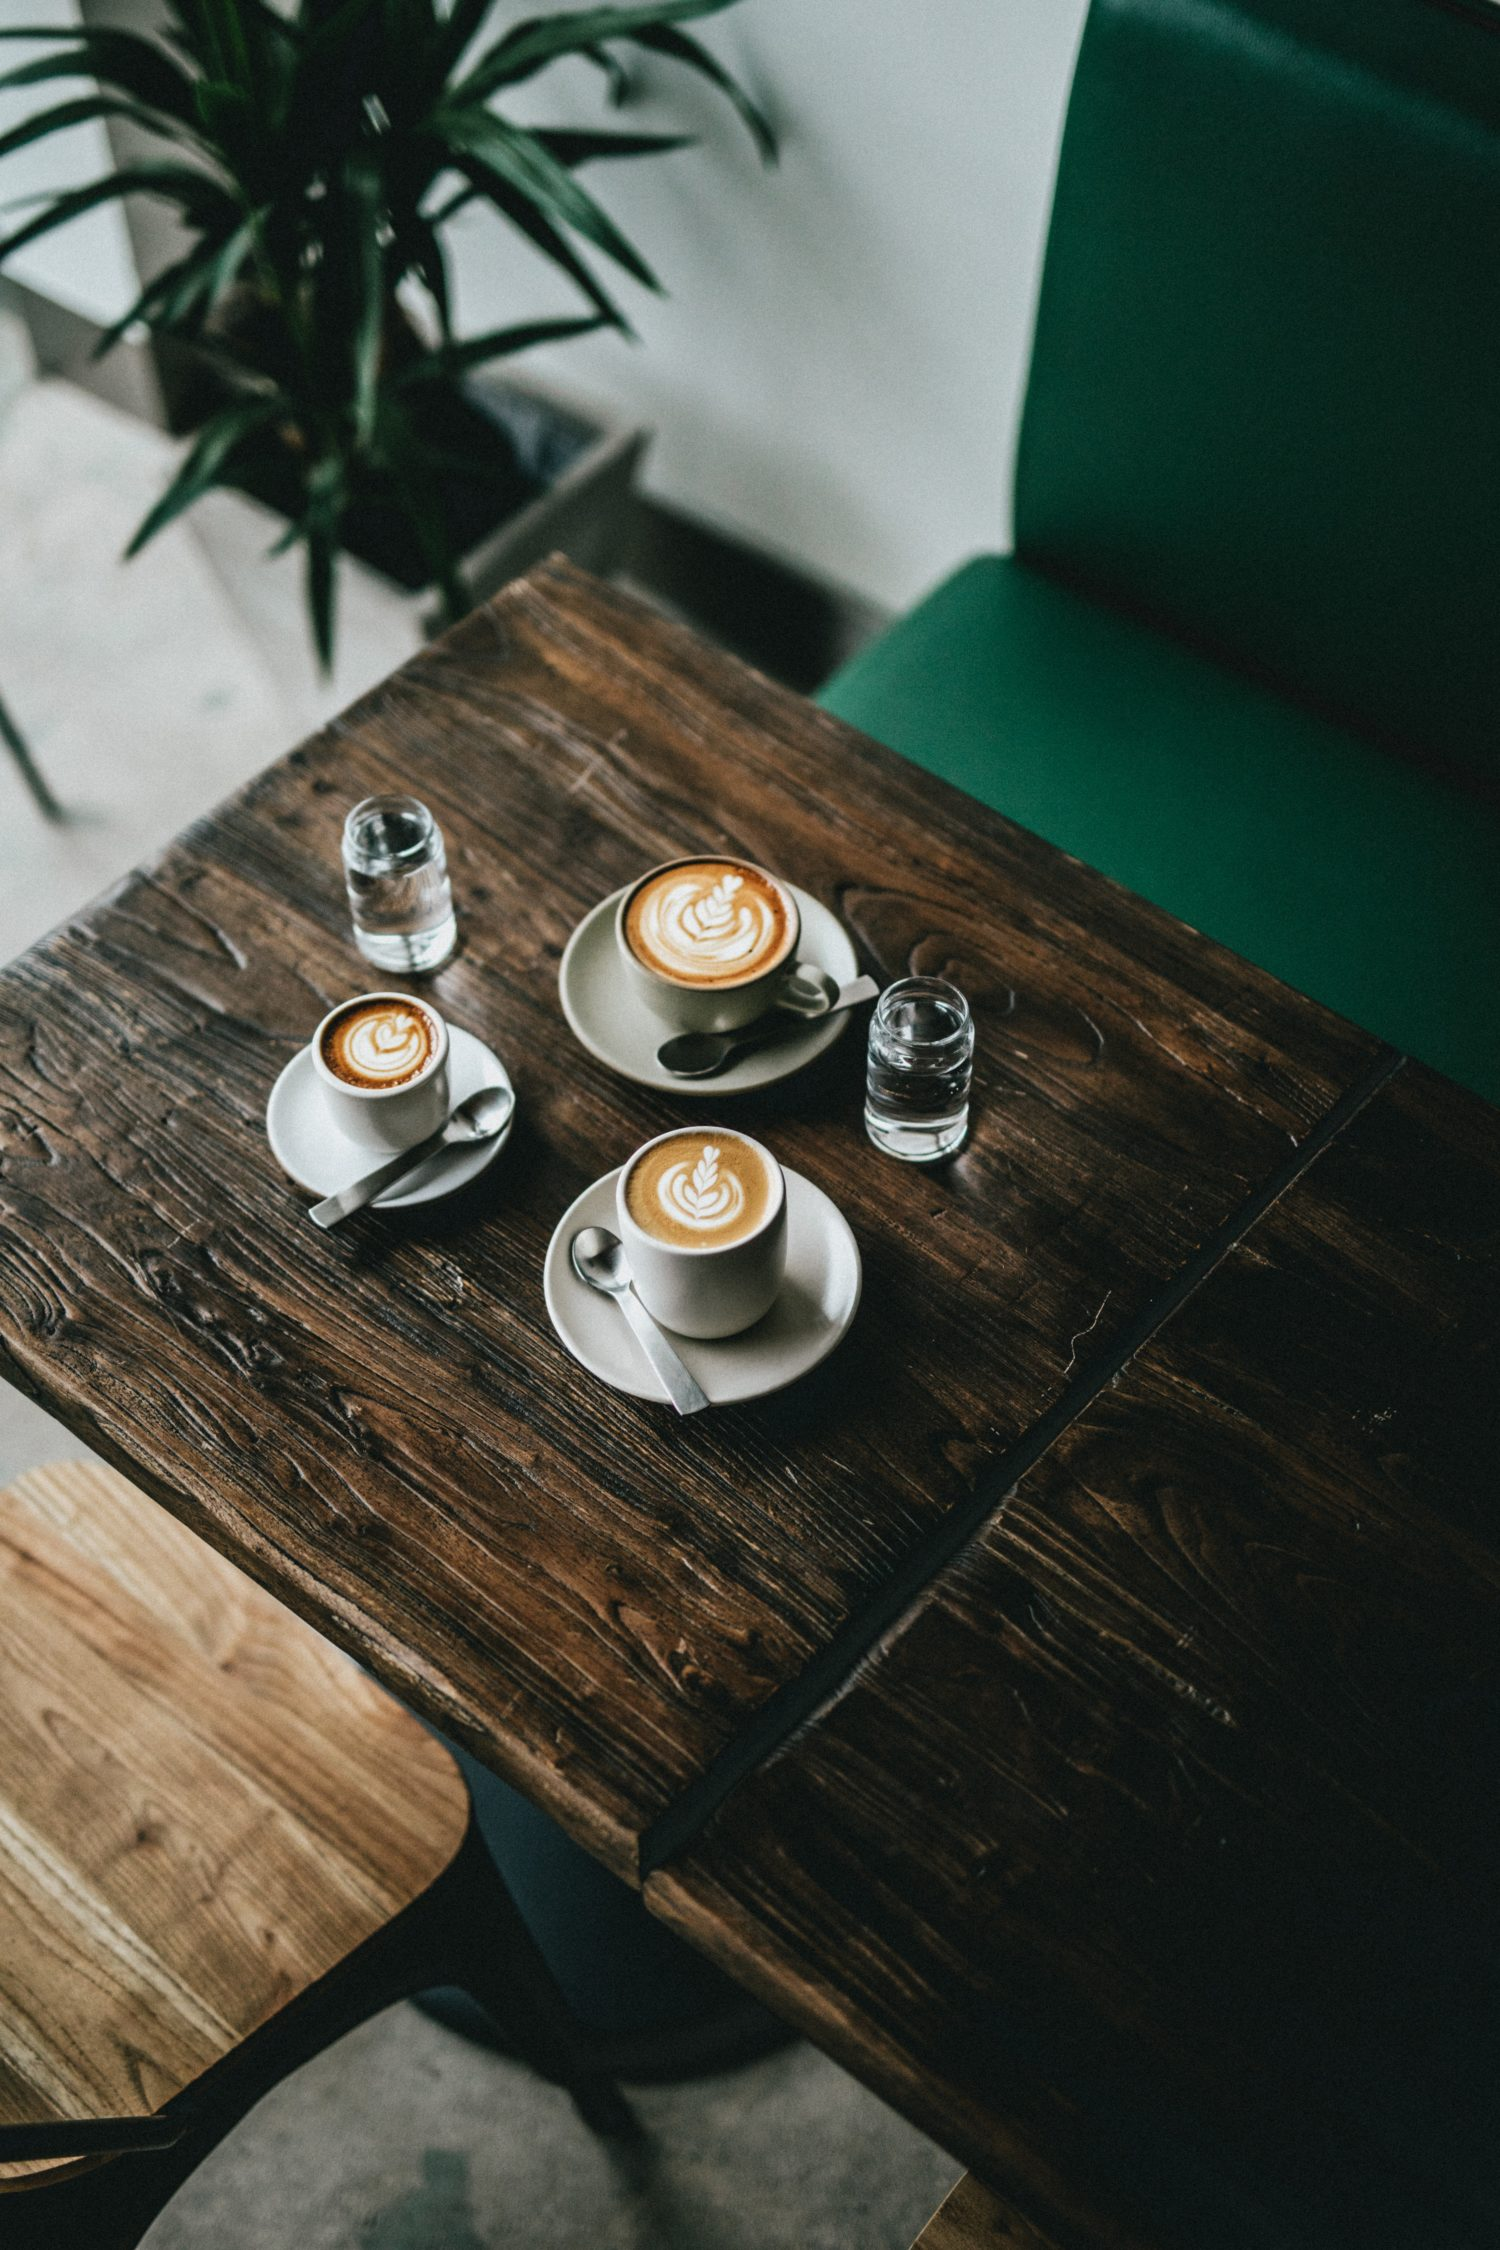 3 coffees on a table in a cafe